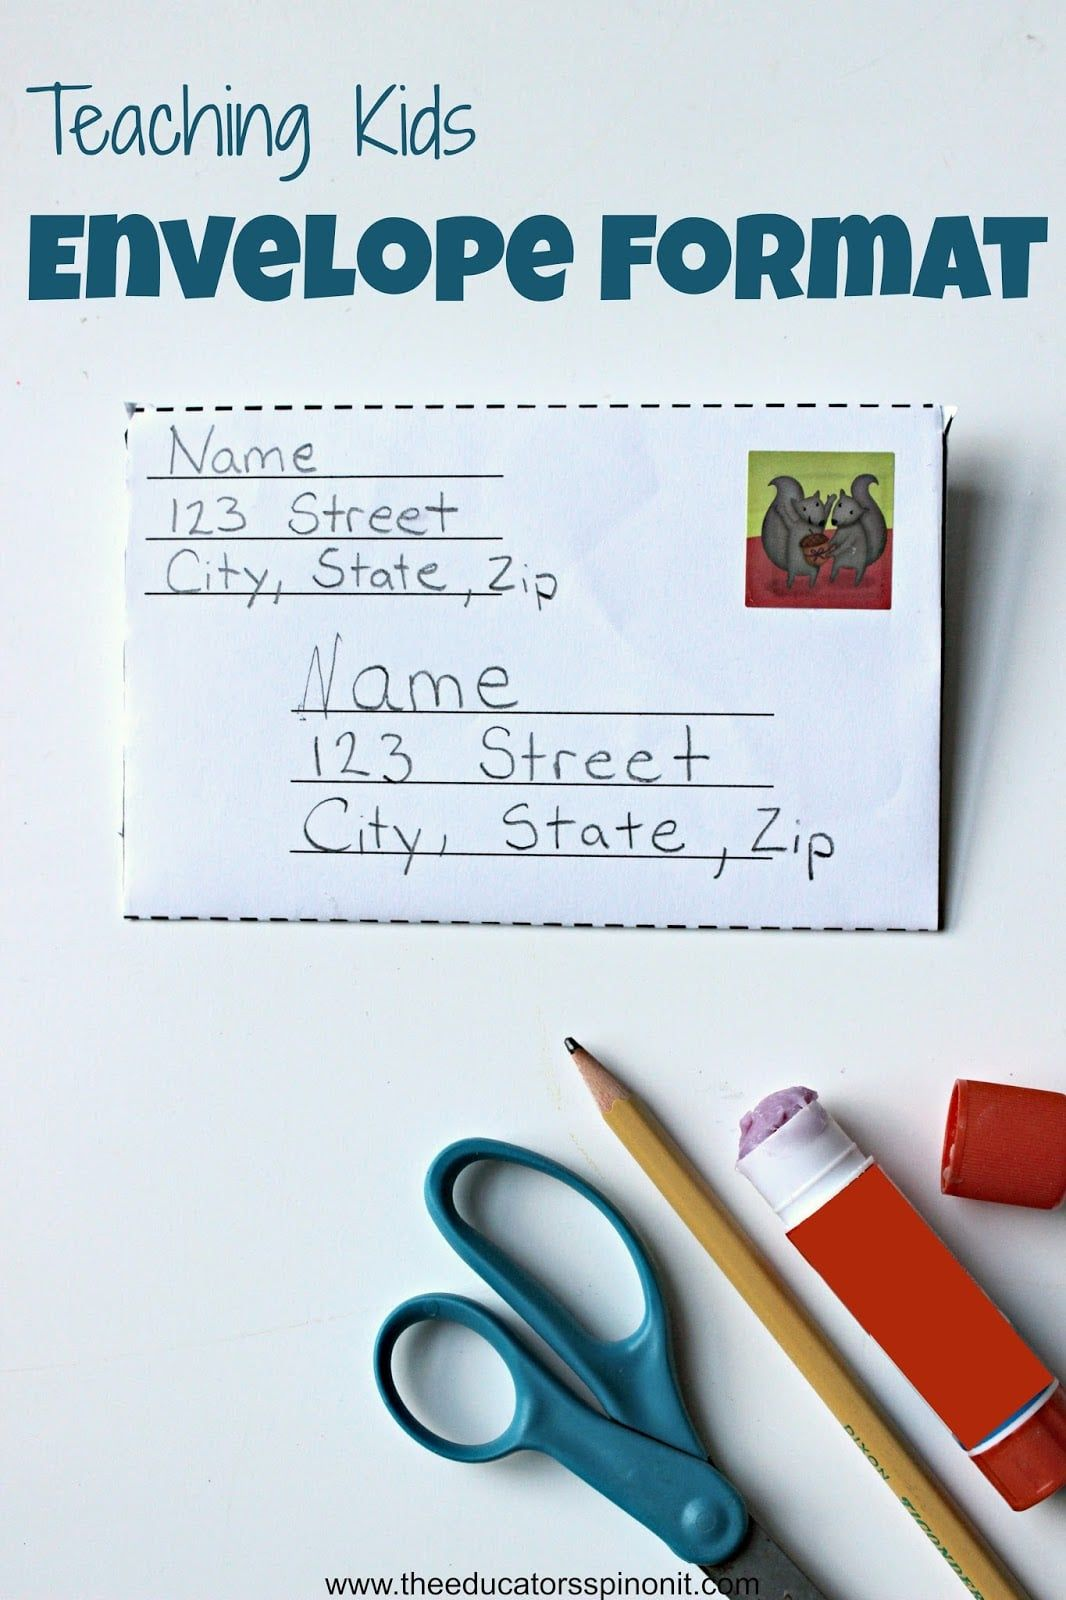 How To Write An Envelope Letter.Teaching Kids About Envelope Format Letters For Kids